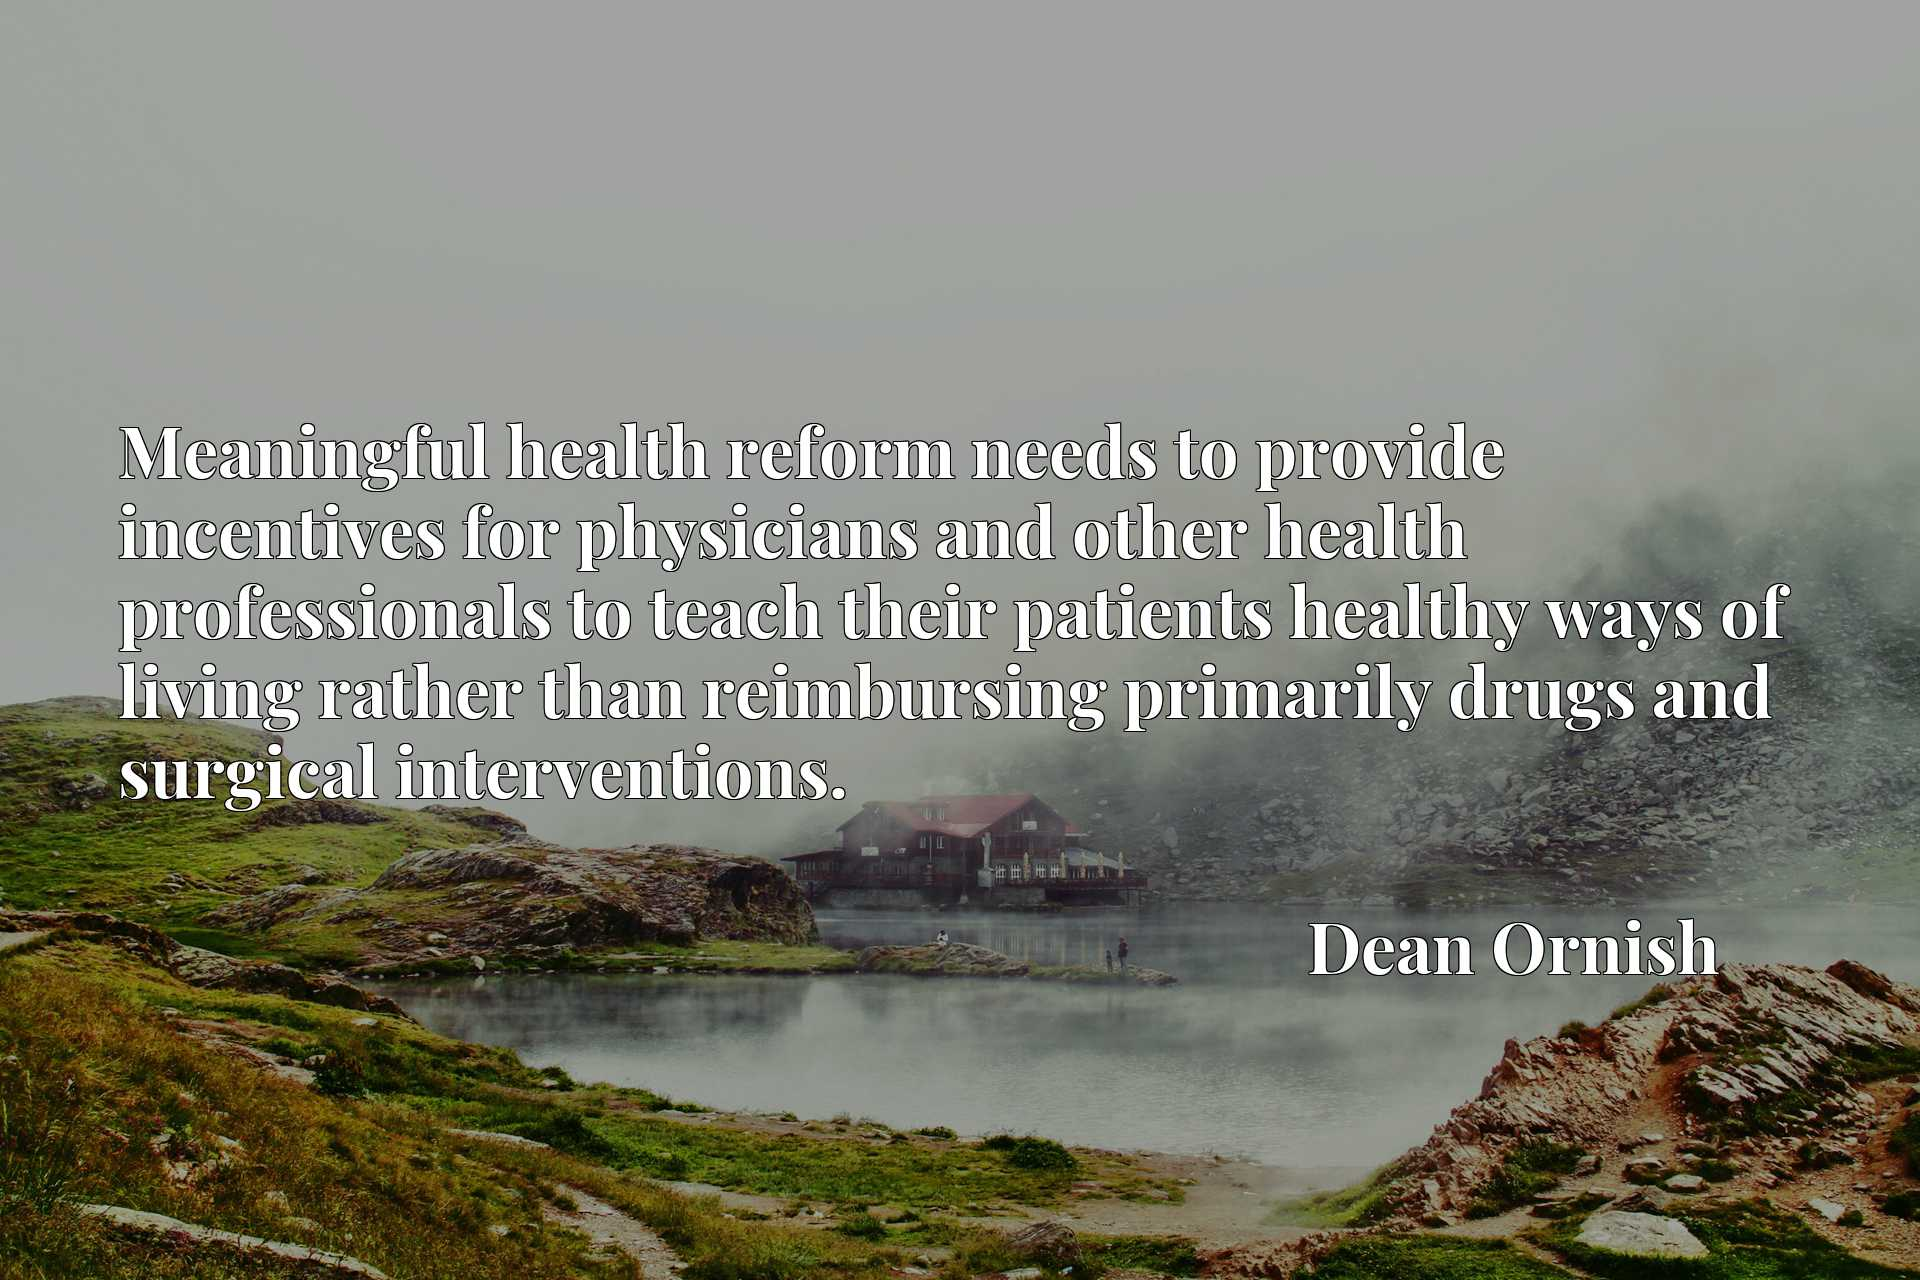 Meaningful health reform needs to provide incentives for physicians and other health professionals to teach their patients healthy ways of living rather than reimbursing primarily drugs and surgical interventions.